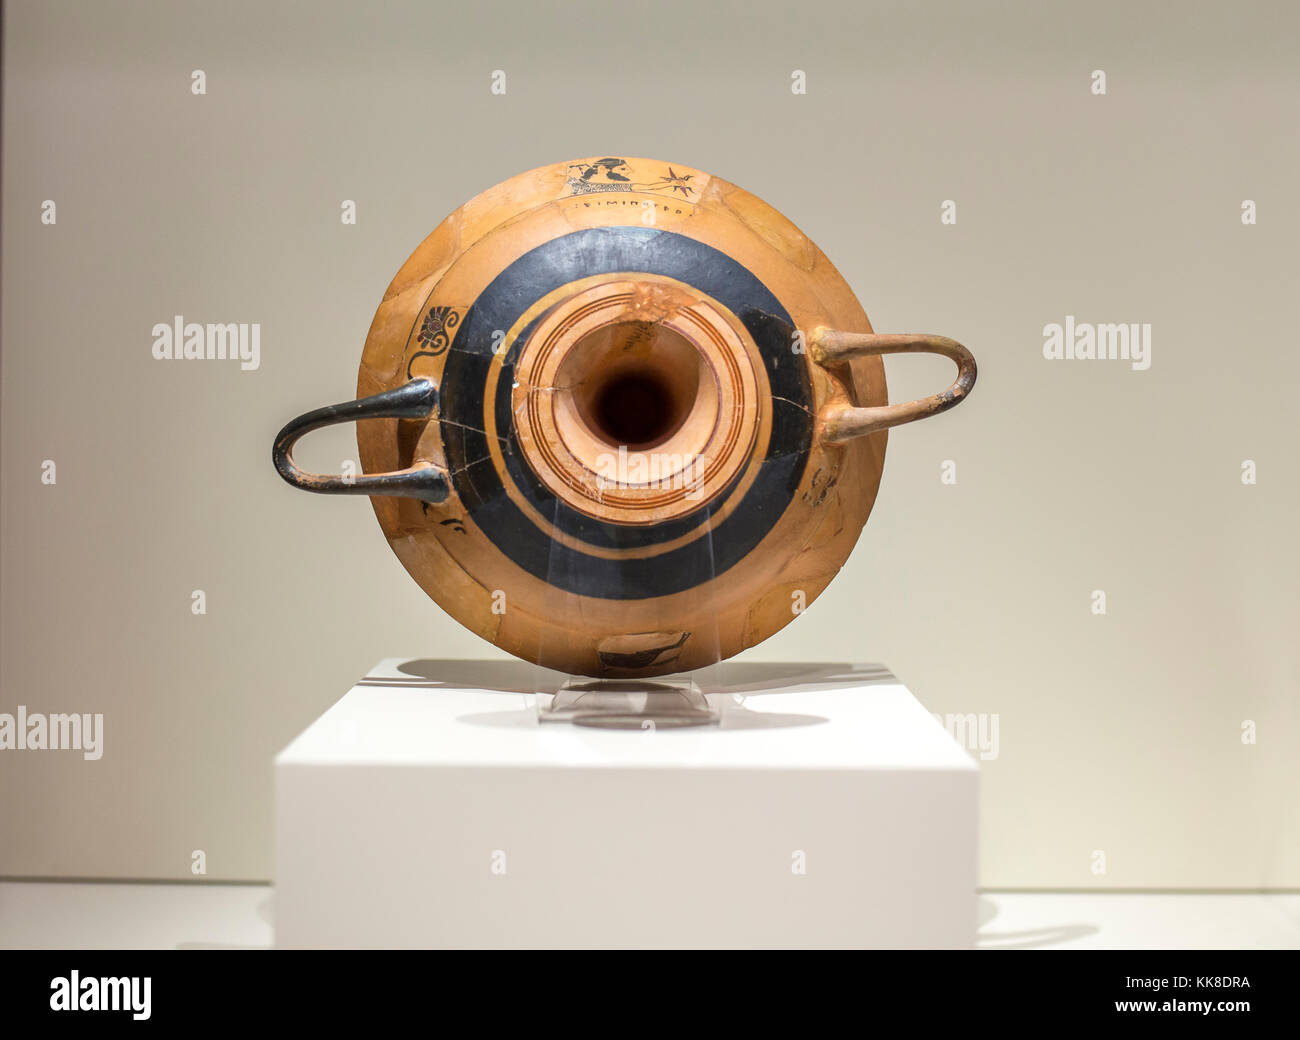 Madrid, Spain - November 10, 2017: Medellin Kylix of Eucherios Cup found in the Tartessian city of Conisturgis, - Stock Image